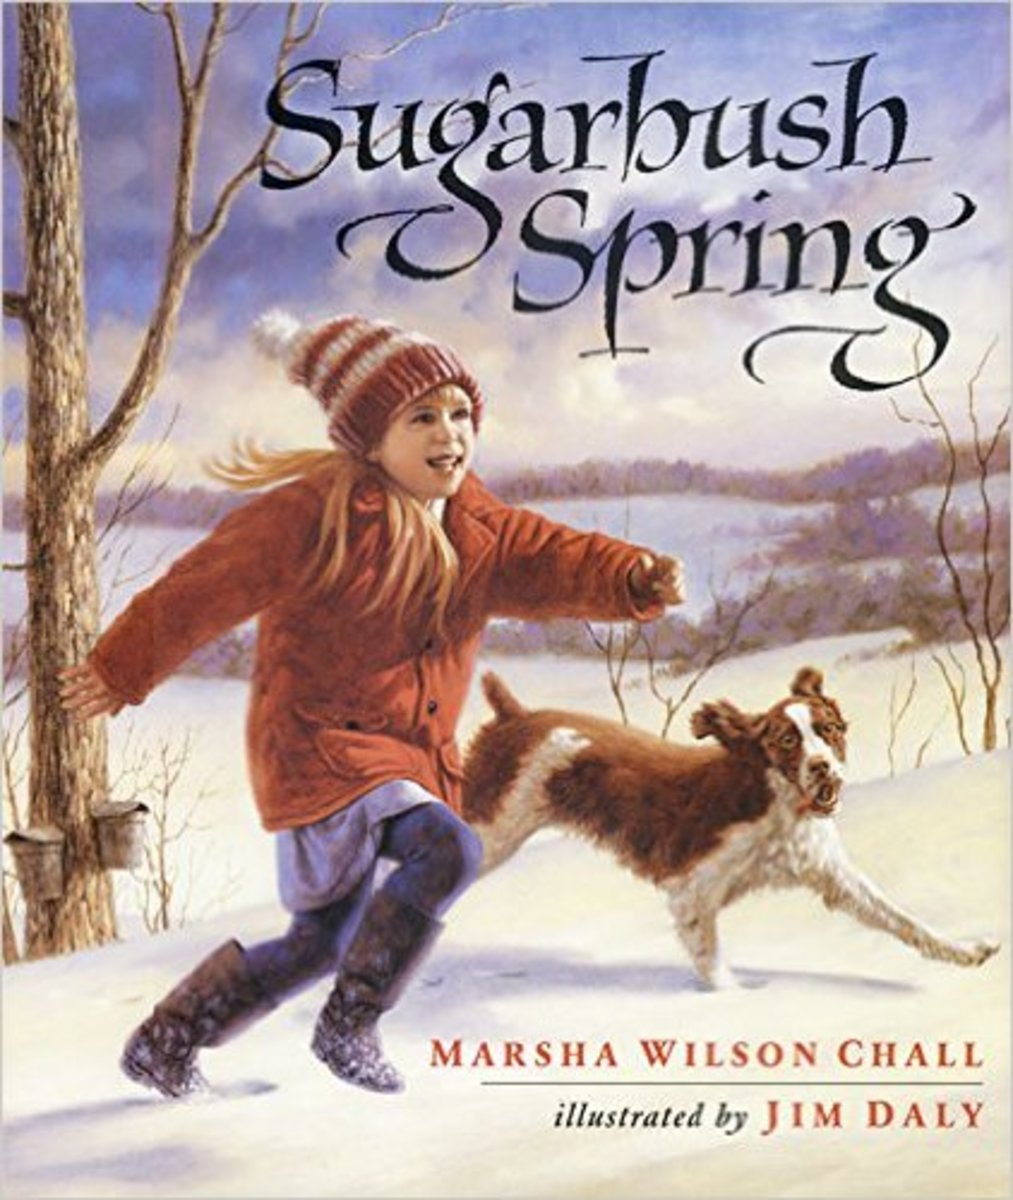 Sugarbush Spring by Marsha Wilson Chall